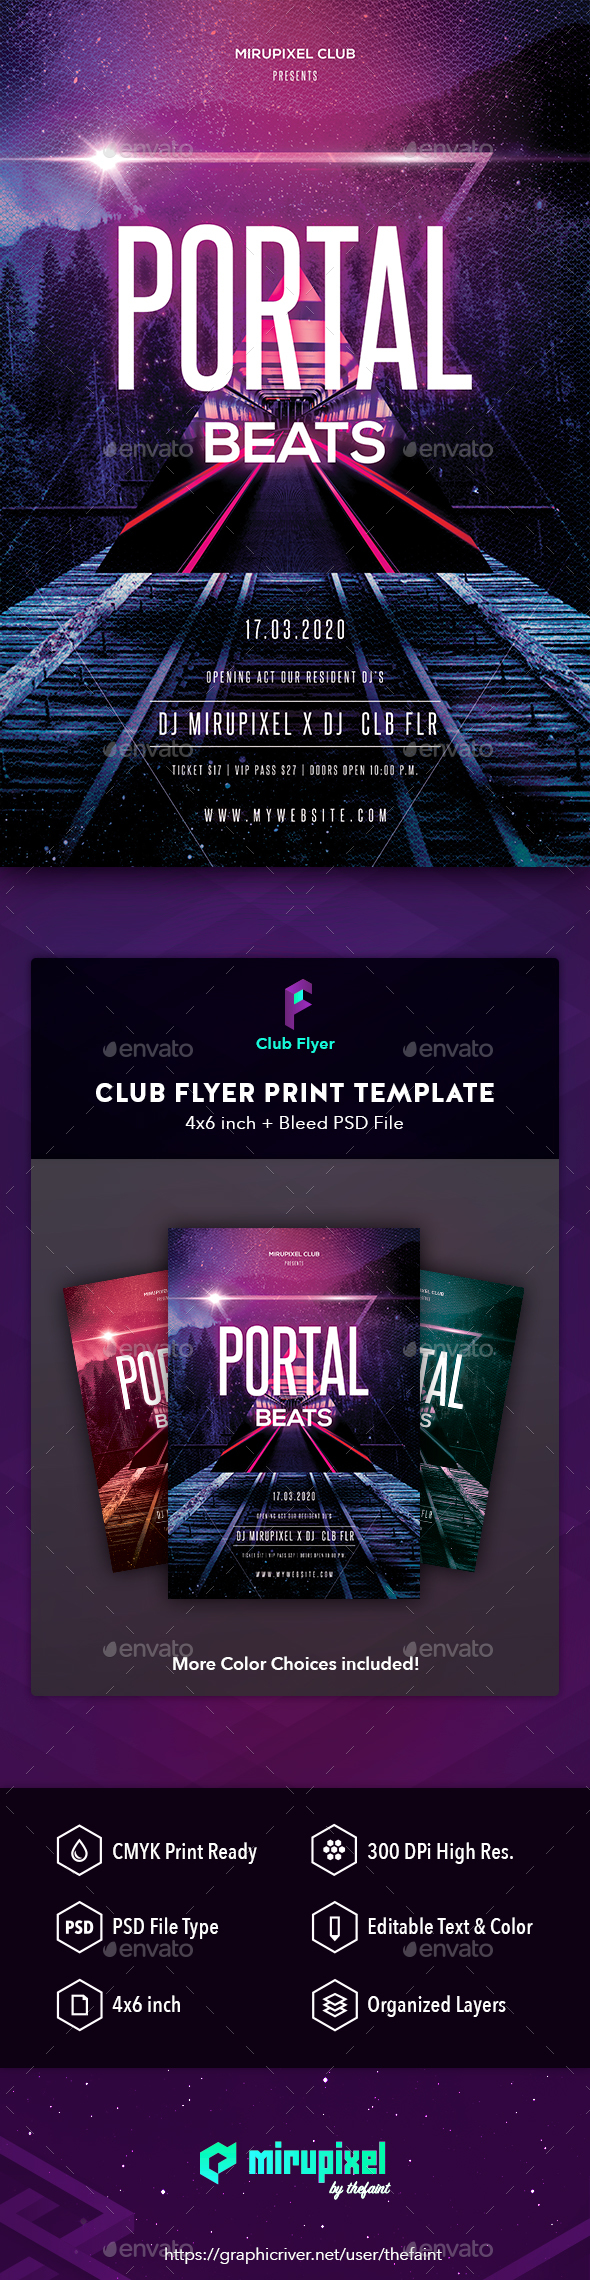 Club Flyer - Portal Beats - Clubs & Parties Events